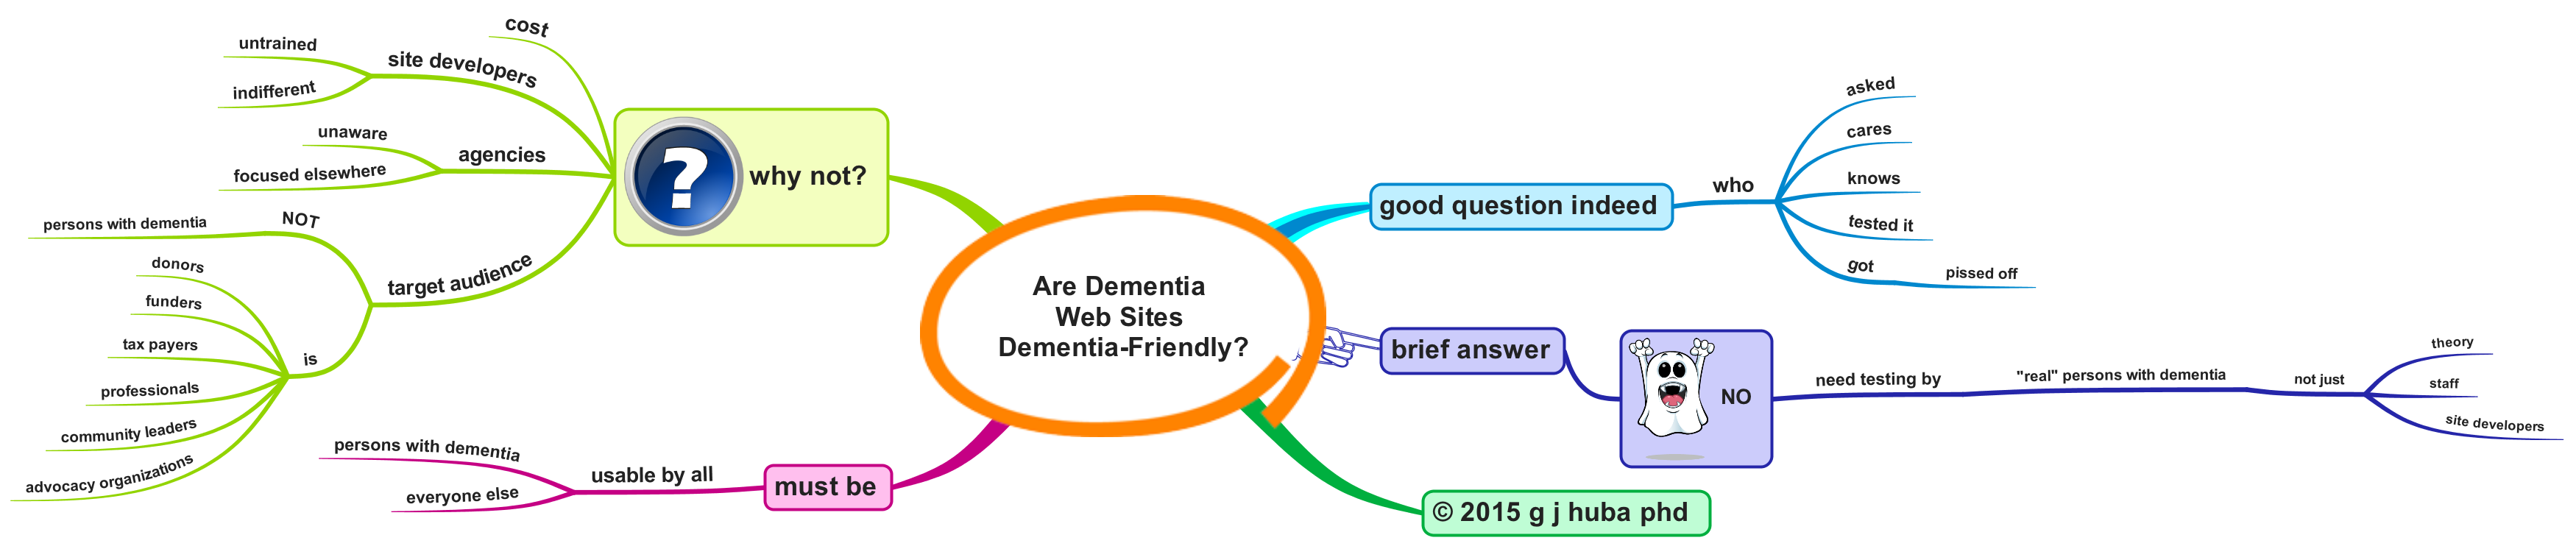 Are Dementia Web Sites Dementia-Friendly